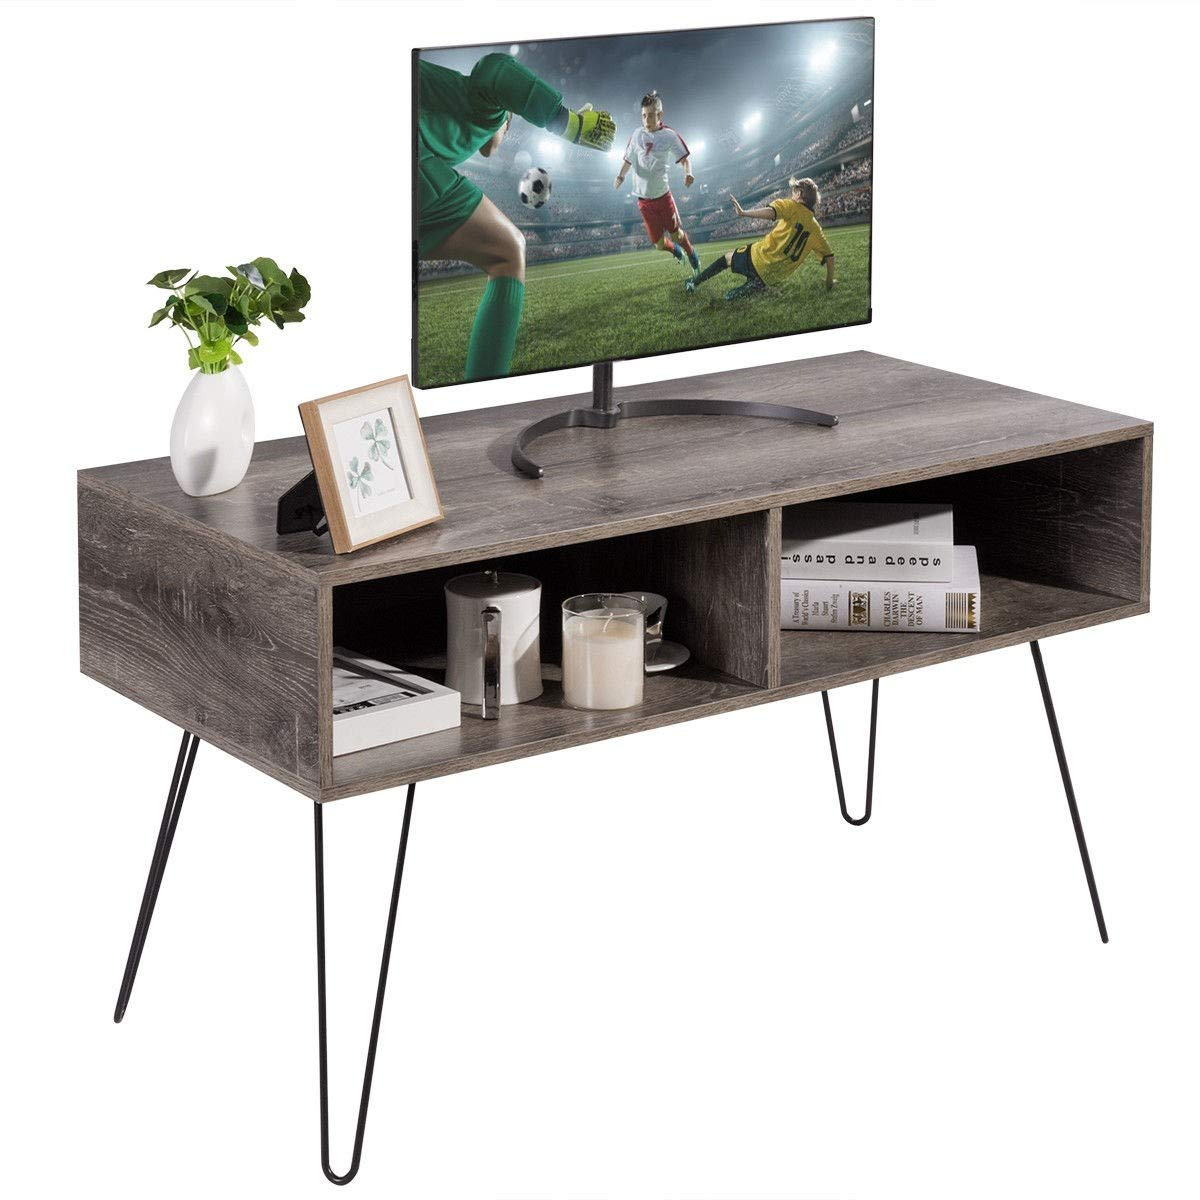 KING77777 Retro and Modern Design Style 42'' TV Stand Wood Media Console with Sturdy Metal Hairpin Legs by KING77777 (Image #4)